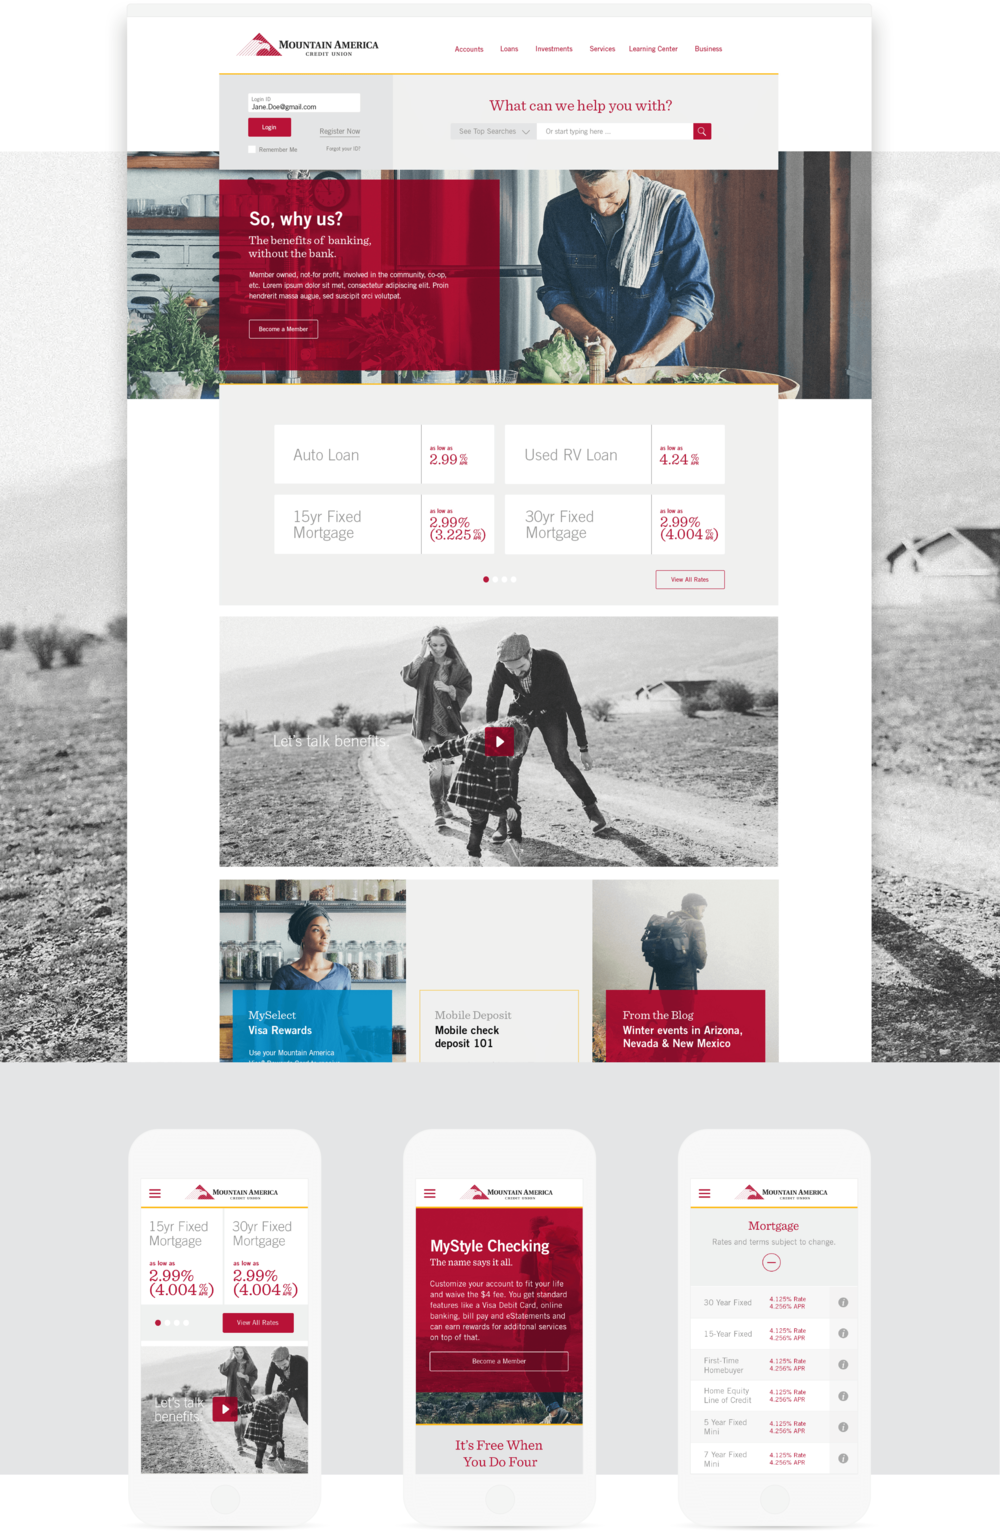 MACU Landing Page and Mobile Display